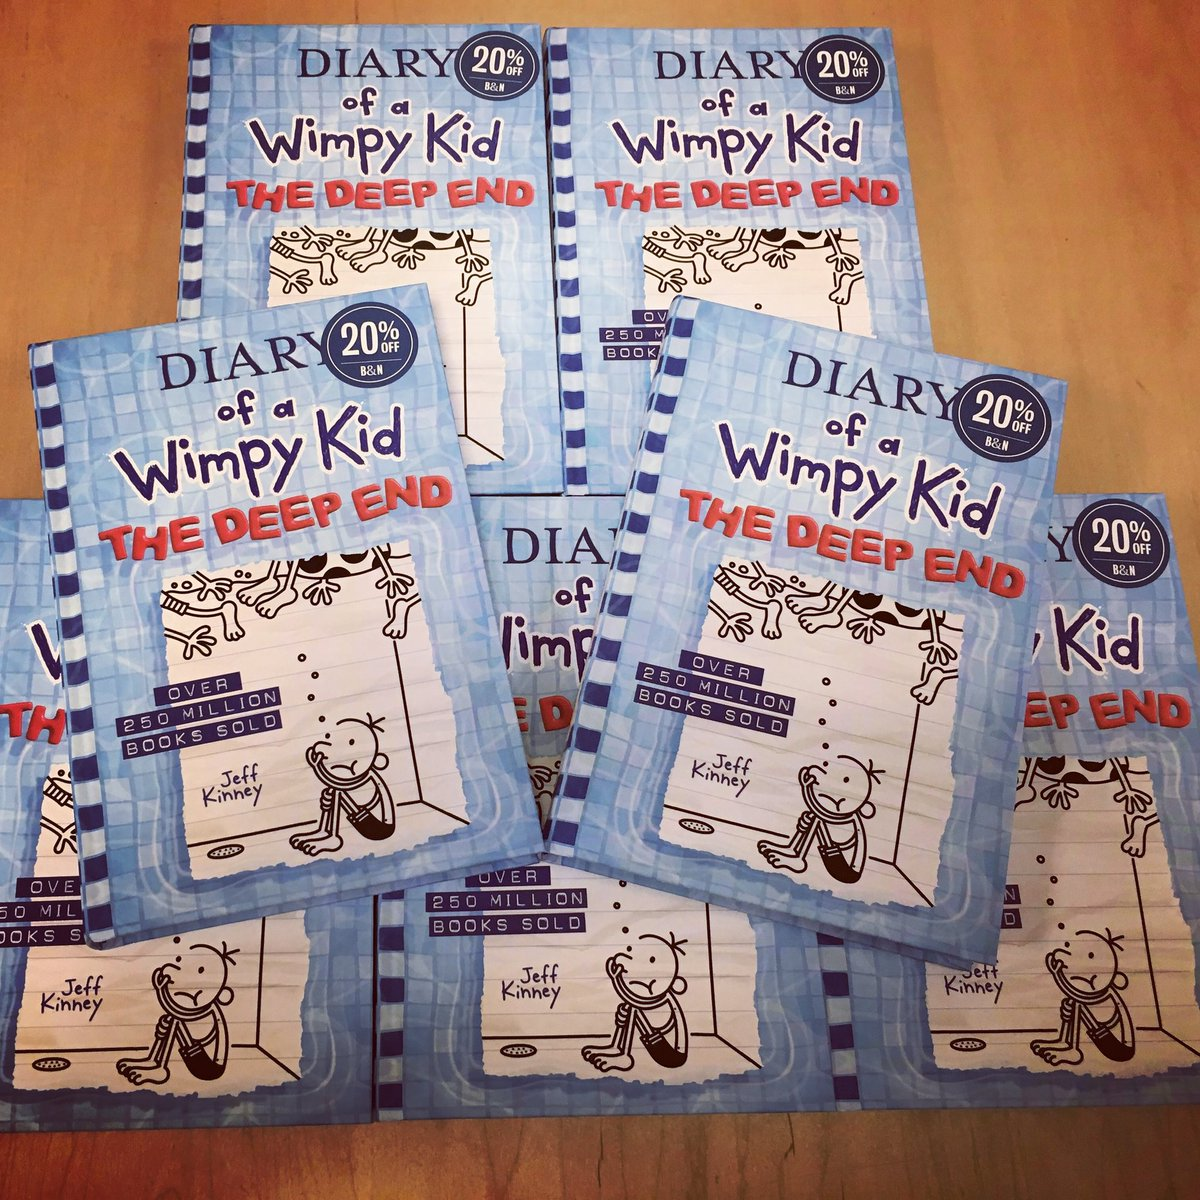 Calling all Diary of a Wimpy Kid Fans!  The latest of the Diary of a Wimpy Kid series, The Deep End, is here!  And, for a limited time, it is 20% off.  So come on in and get your copy today. #bnmiramesa #jeffkinney #diaryofawimpykid #diaryofawimpykidthedeepend #142bn #kidsbooks https://t.co/jTzBN9YcVL